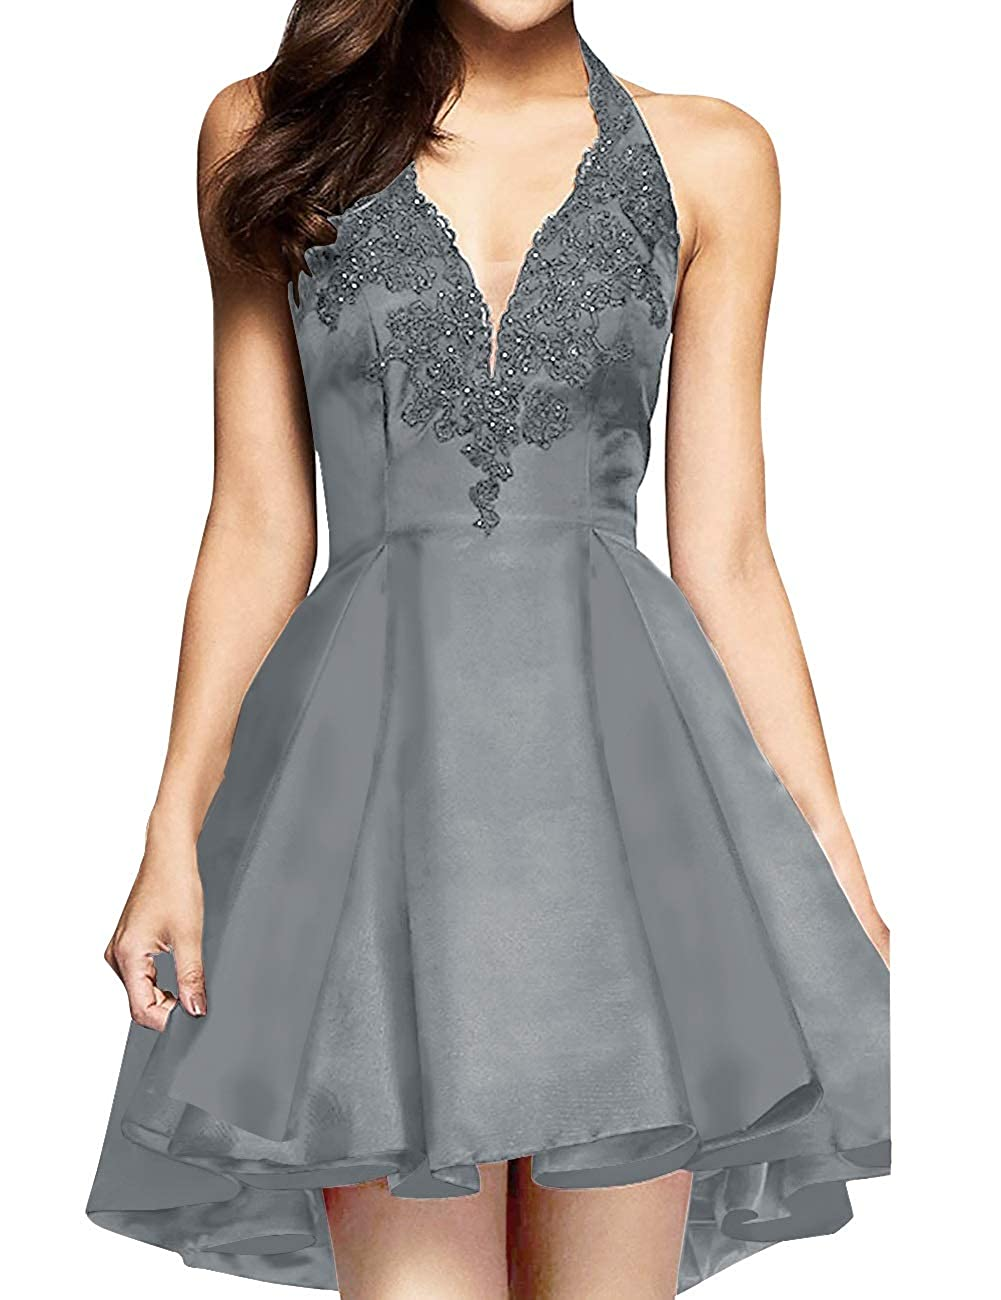 Steel Grey MorySong Women's Applique Lace Satin Halter Neck Short Homecoming Cocktail Dress